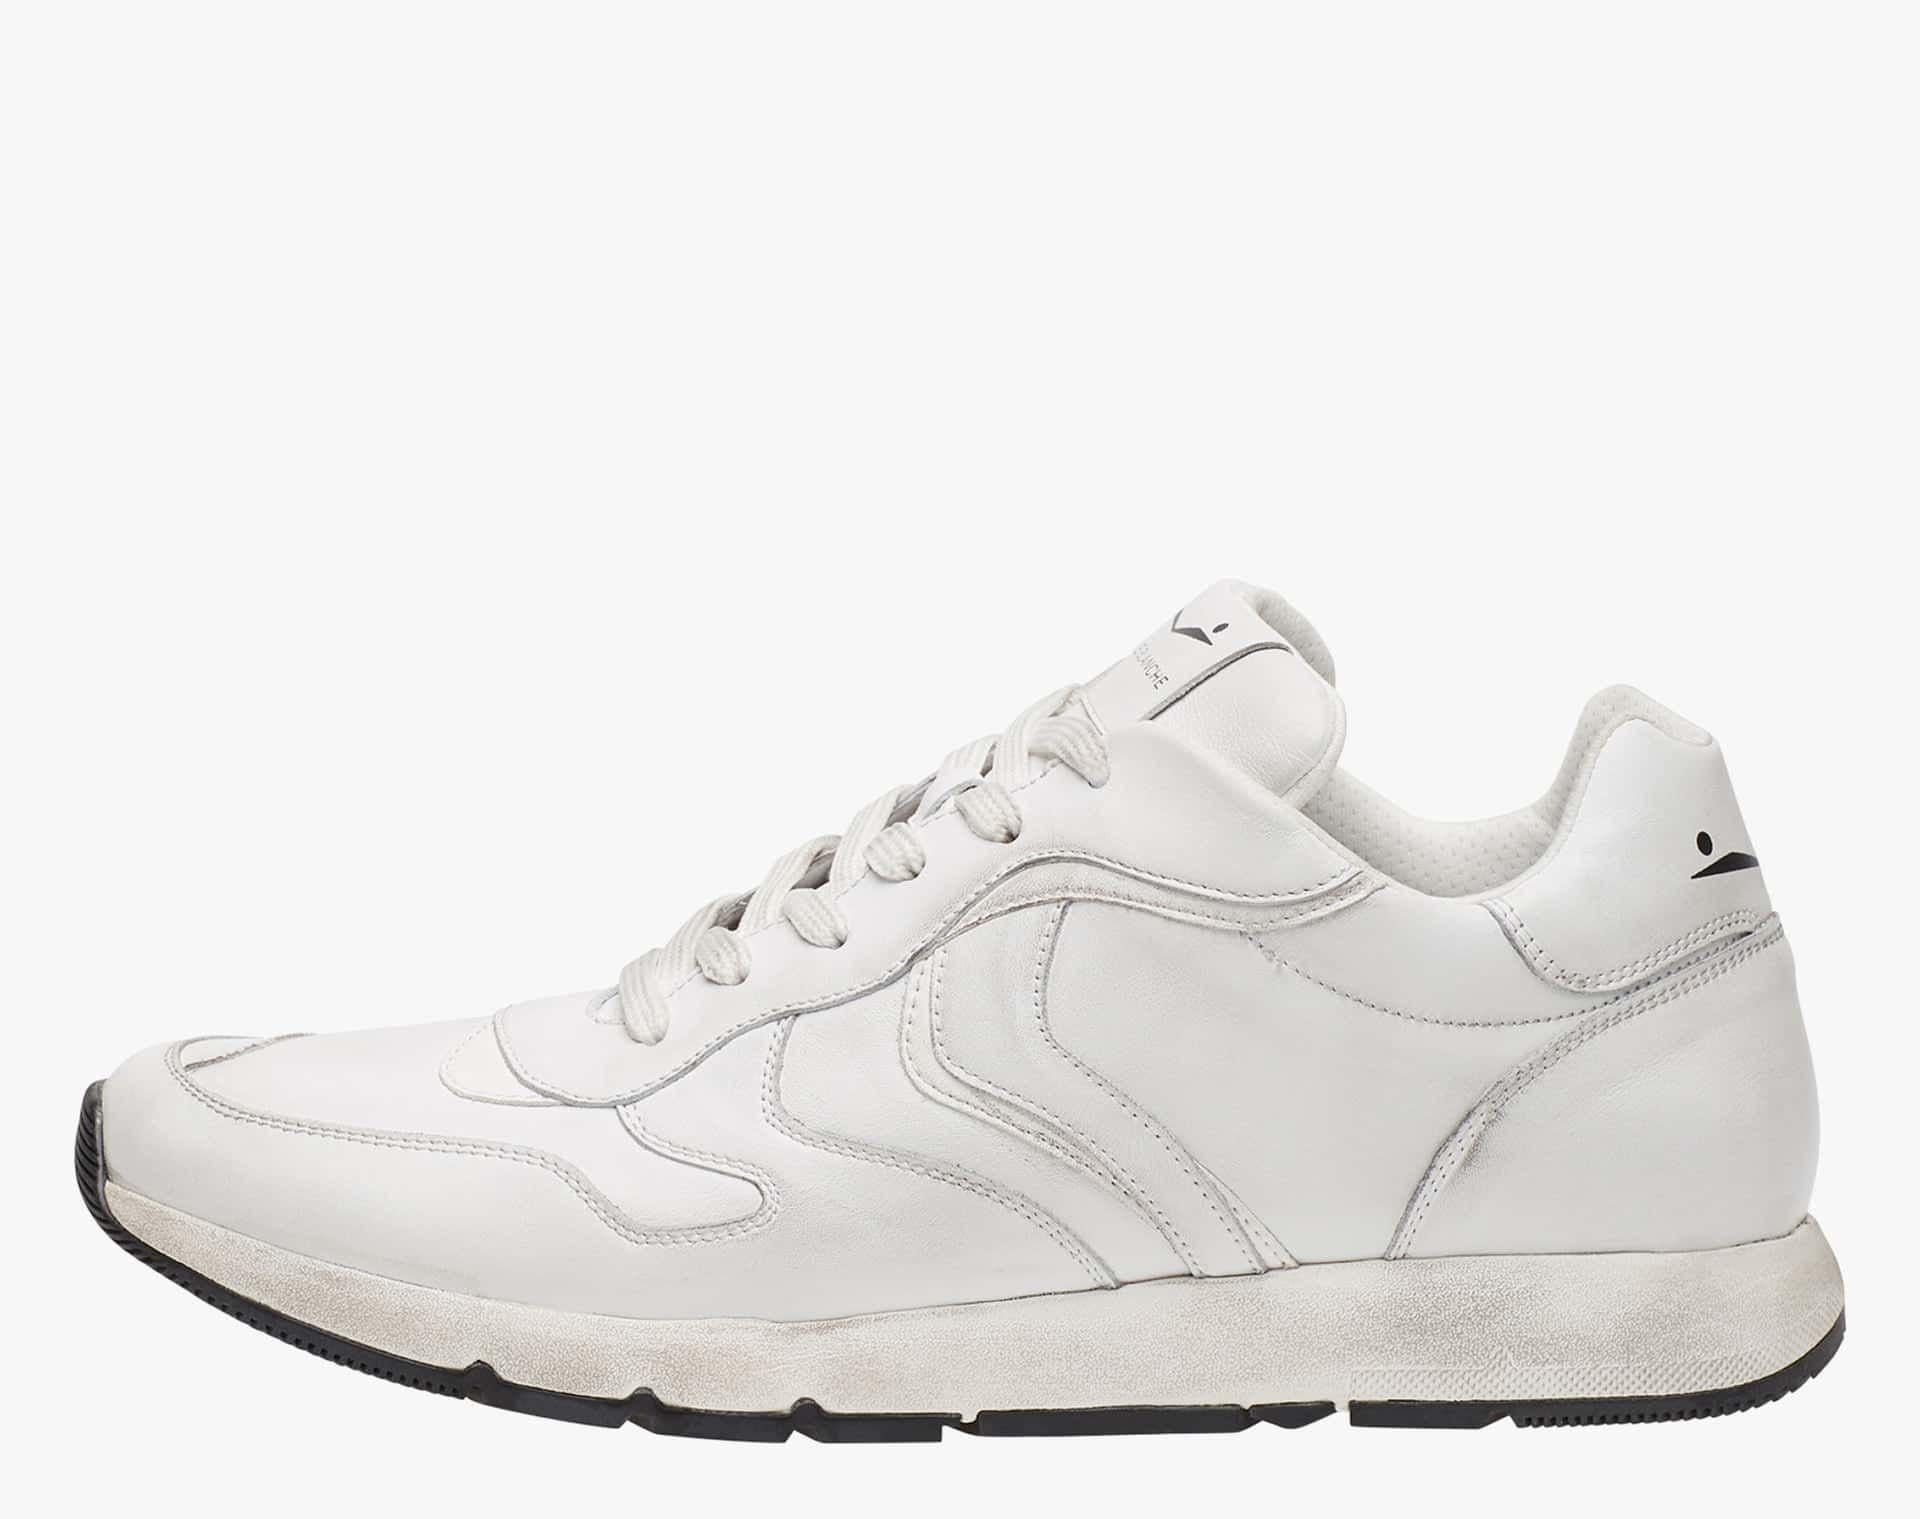 JAVE - Leather sneakers - White